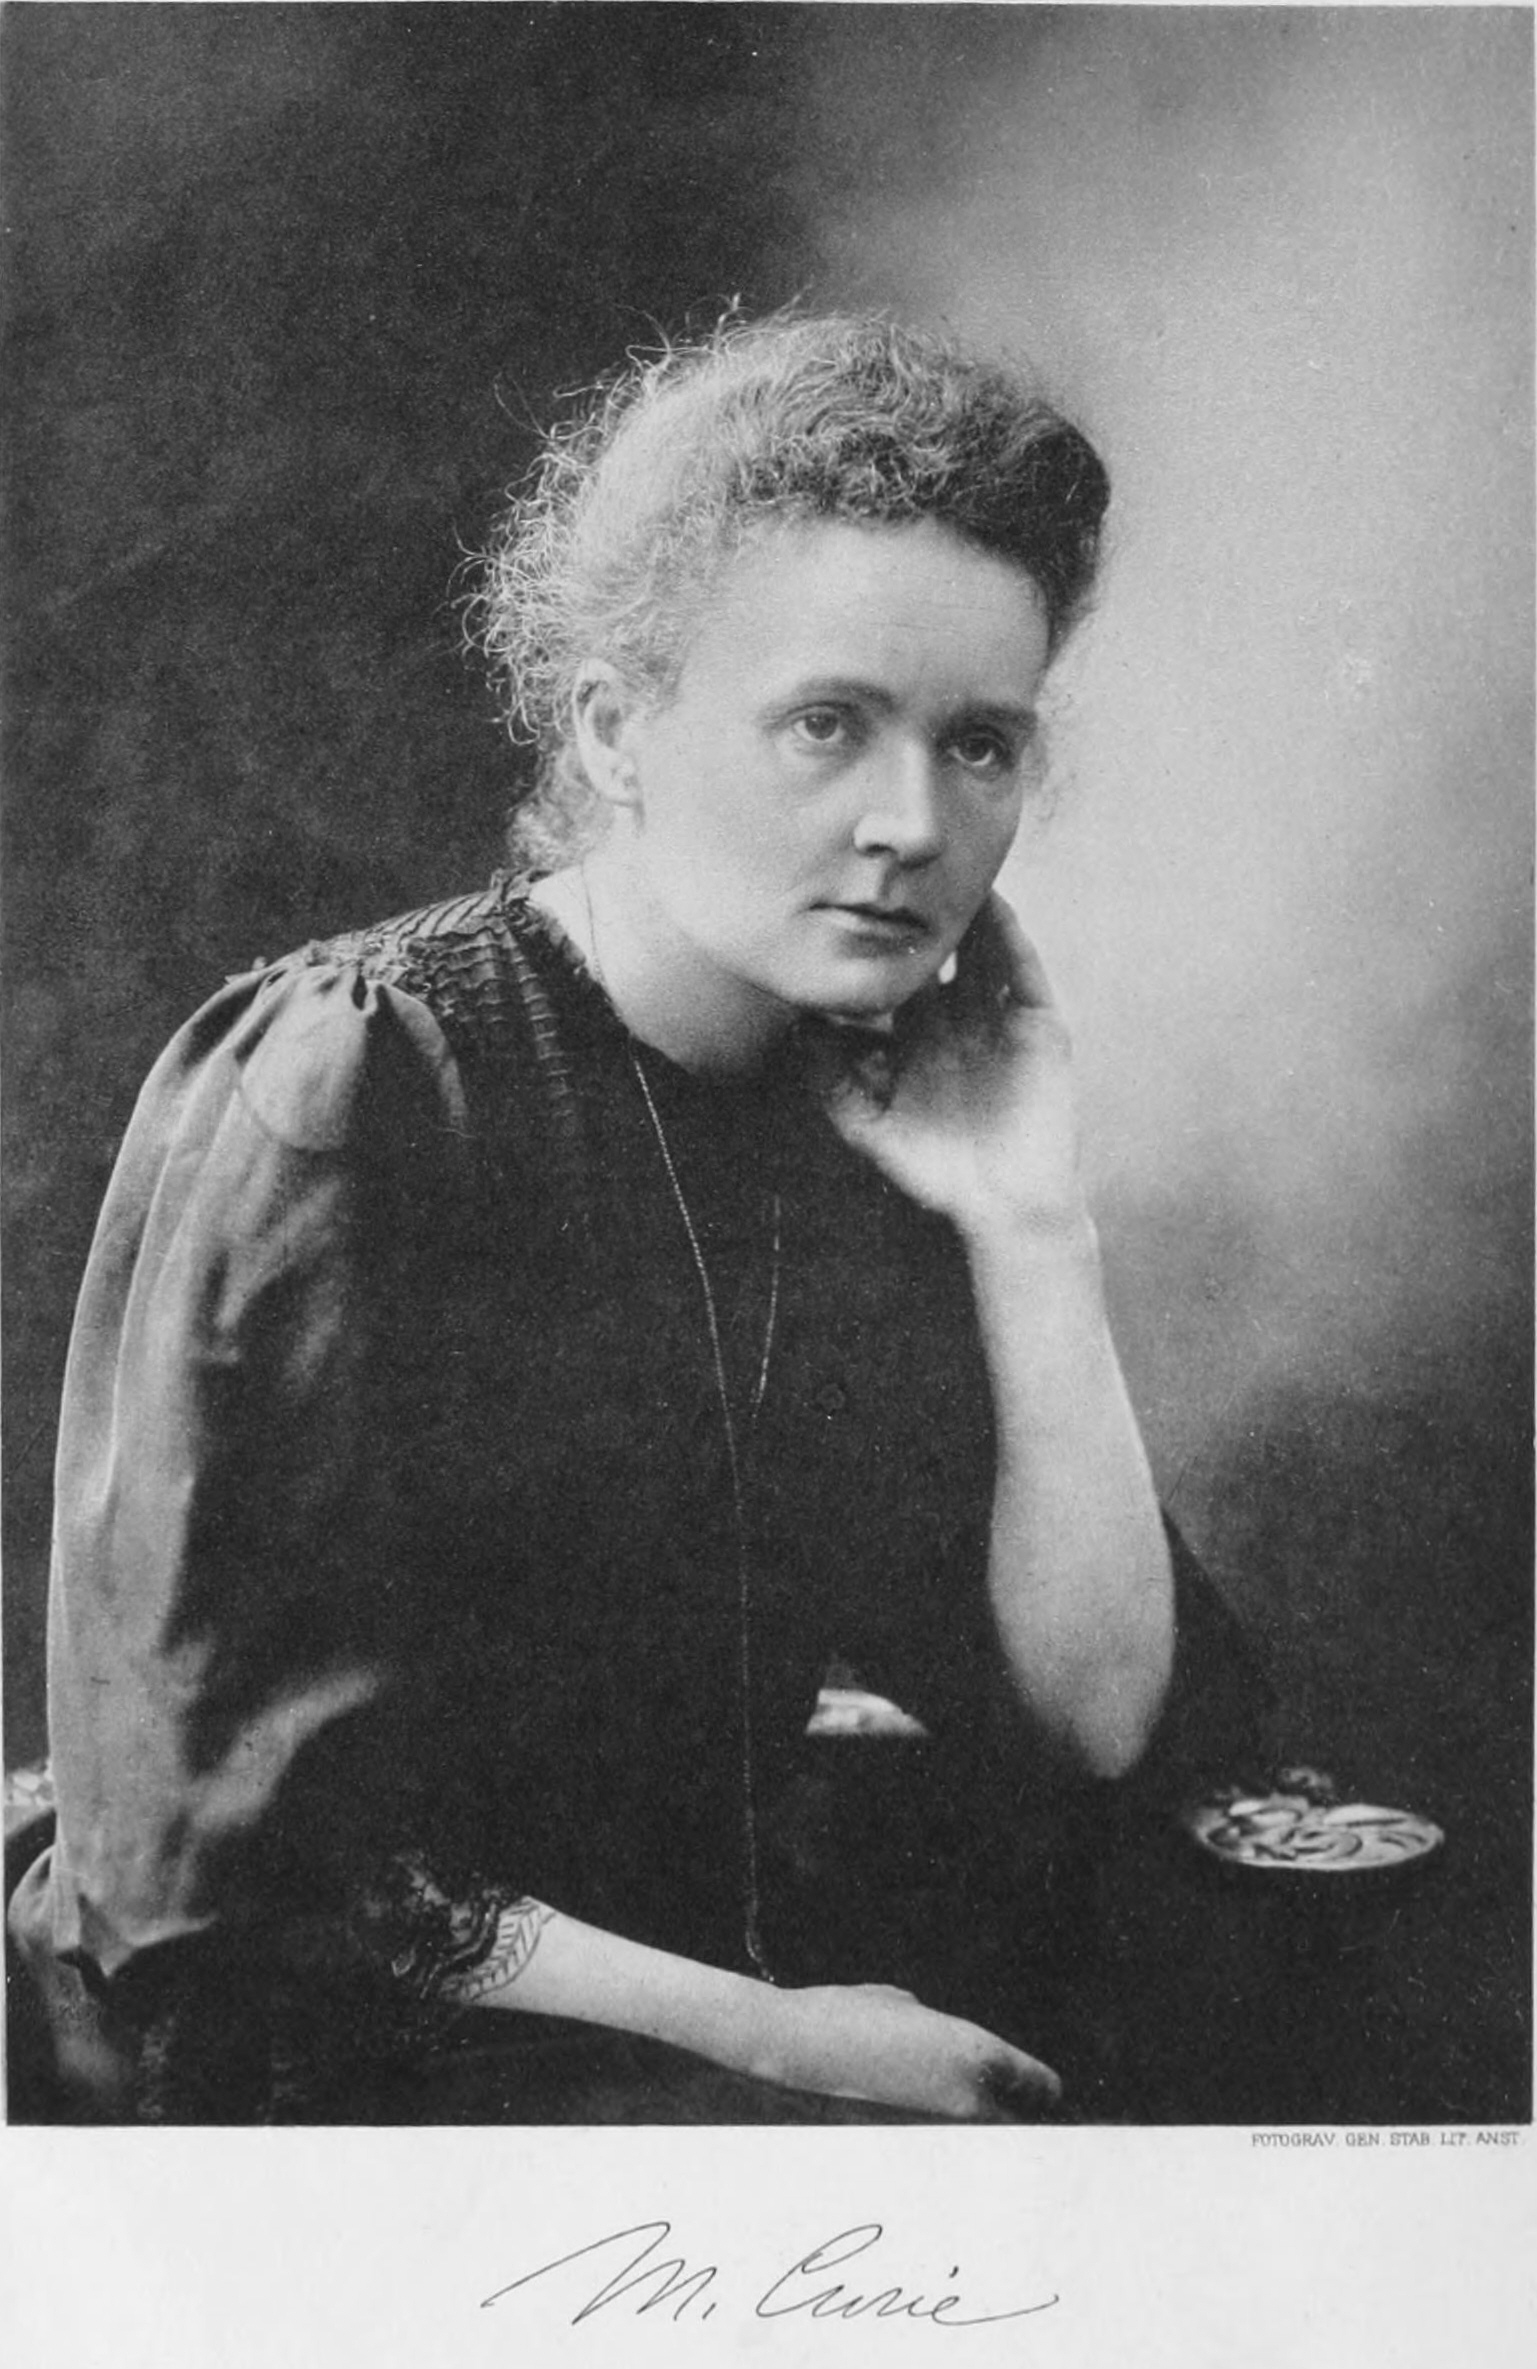 a biography of marie curie Madame curie's passion marie curie, in paris in 1925 eve became a journalist and wrote the definitive biography, madame curie, published in 1937.